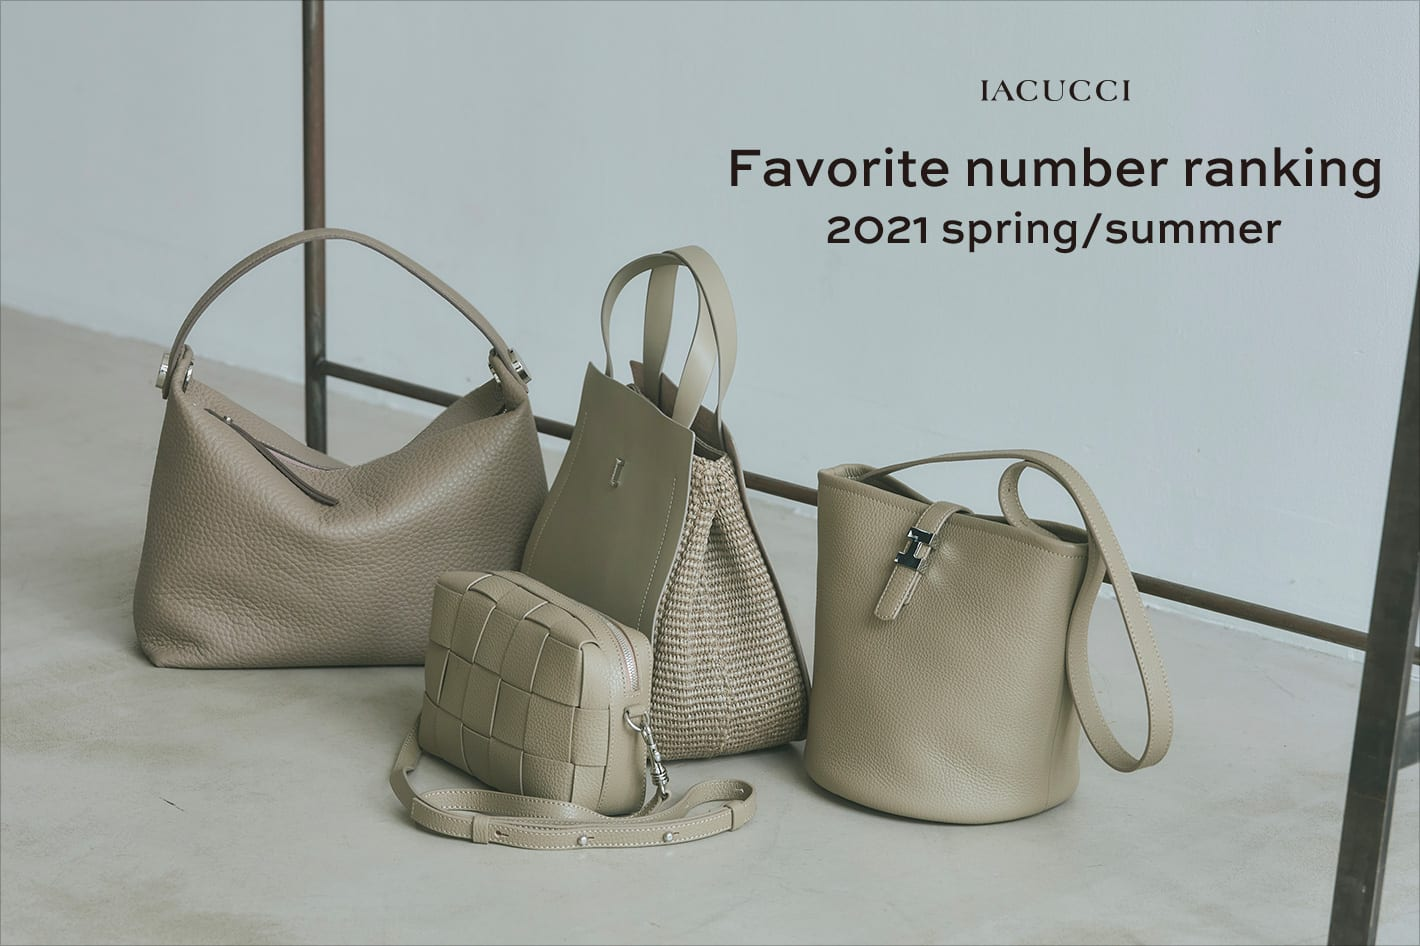 IACUCCI <PICK UP>皆がチェックしている、お気に入り数が多いアイテムは?